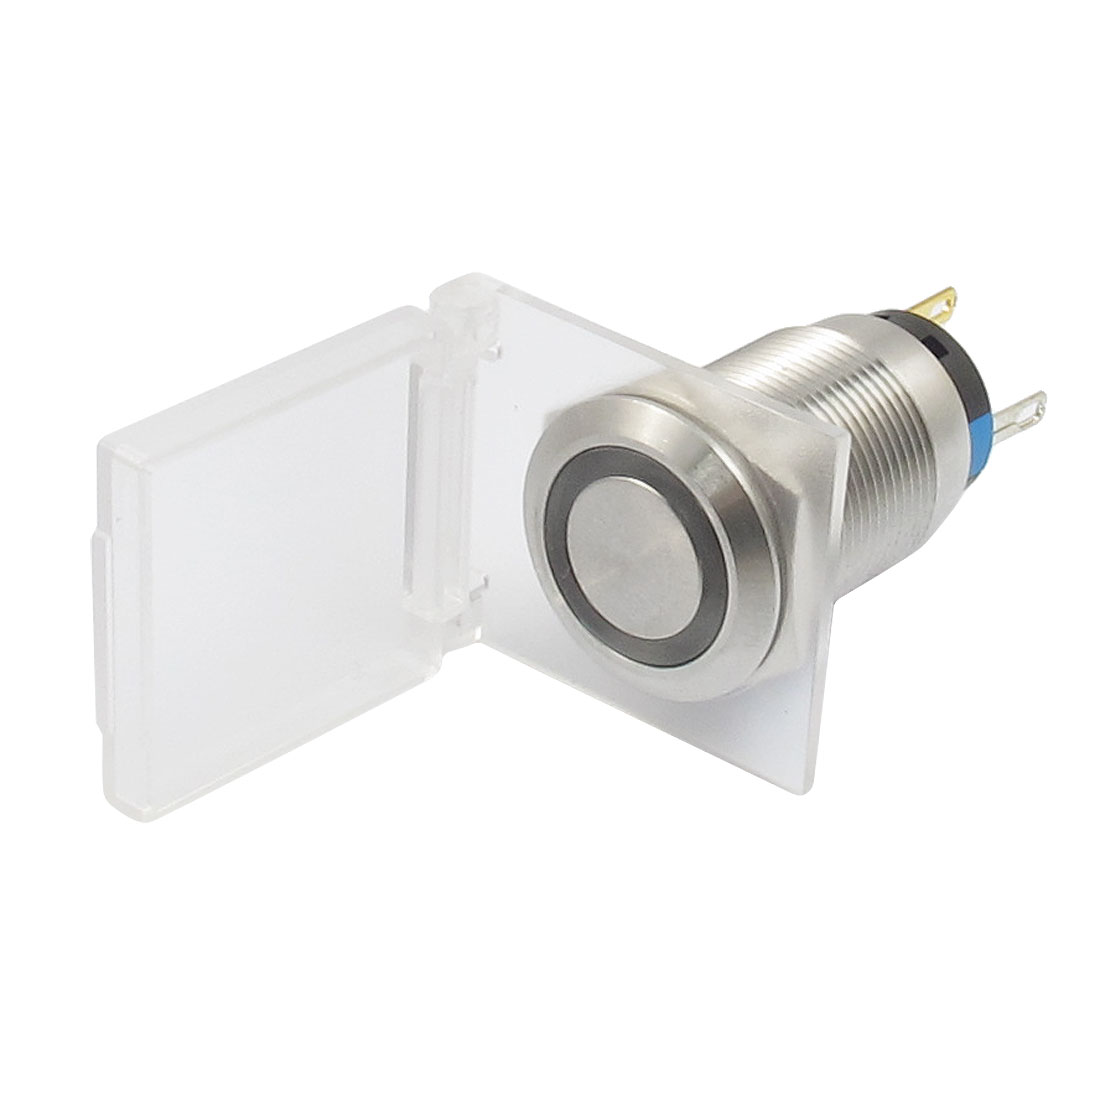 AC 250V 3A 12V White Lamp Flat Waterproof Latching Stainless Push Button Switch